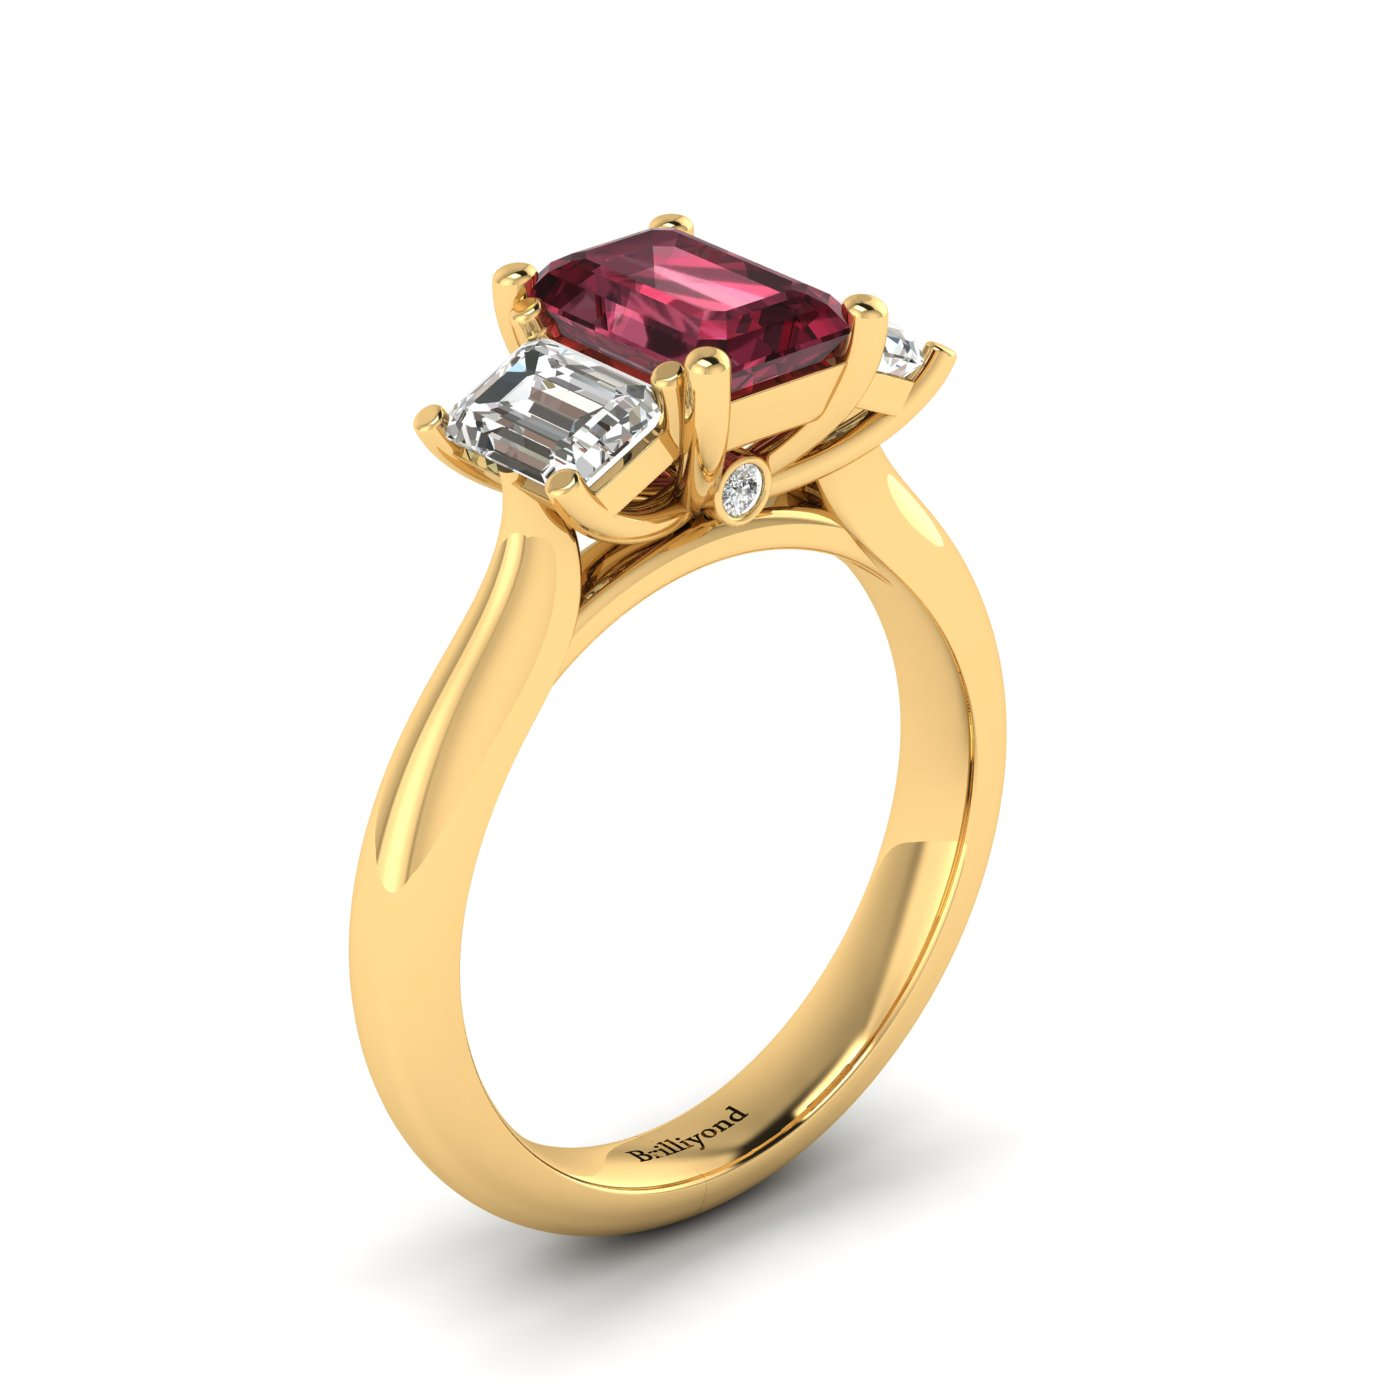 Garnet Yellow Gold Emerald Cut Engagement Ring Blanche_image2